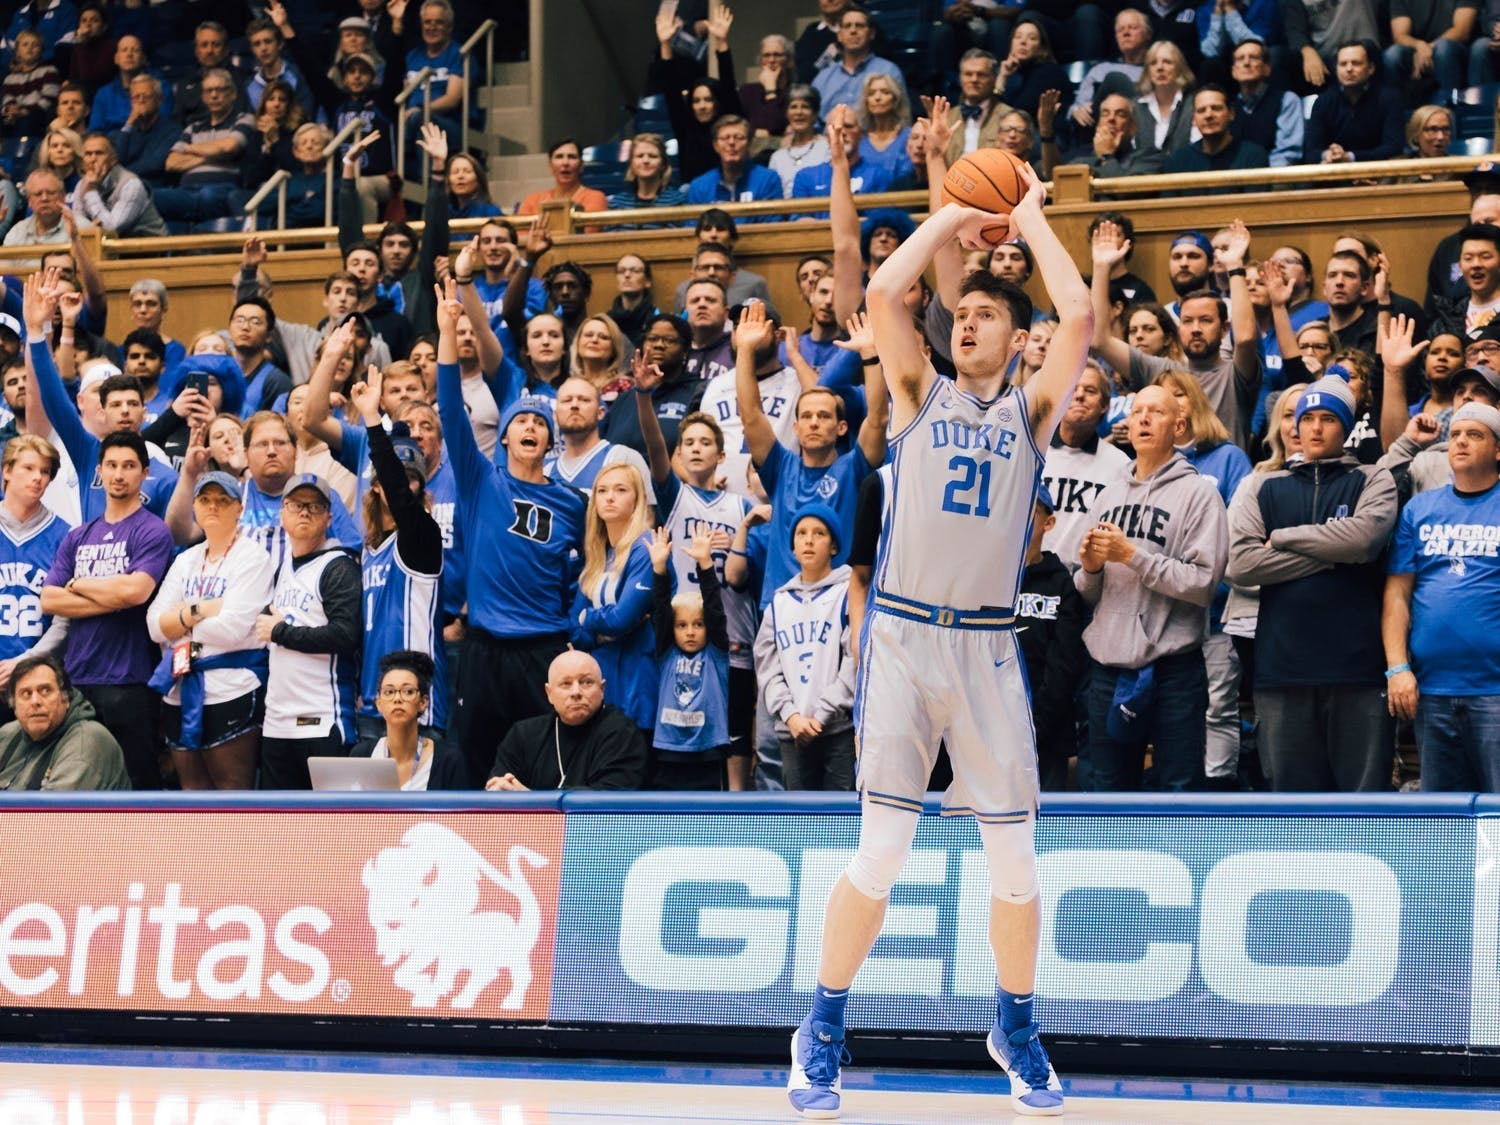 It was a year without fans in Cameron Indoor Stadium for Duke, so the ACC tournament marked the first time the Blue Devils got to play in front of a pro-Duke crowd all season.